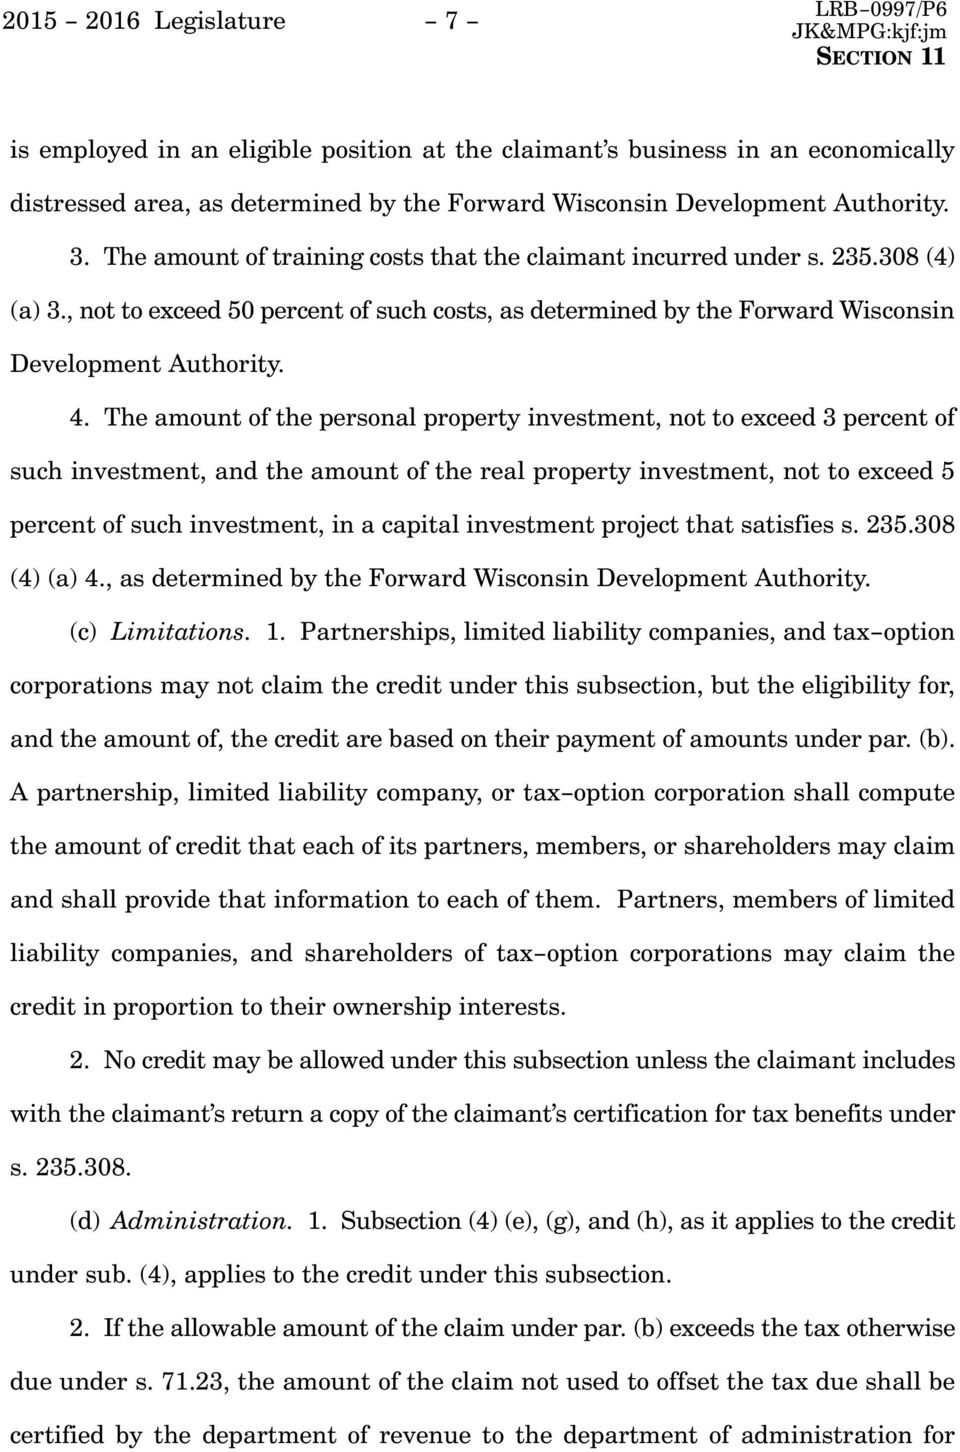 The amount of the personal property investment, not to exceed 3 percent of such investment, and the amount of the real property investment, not to exceed 5 percent of such investment, in a capital